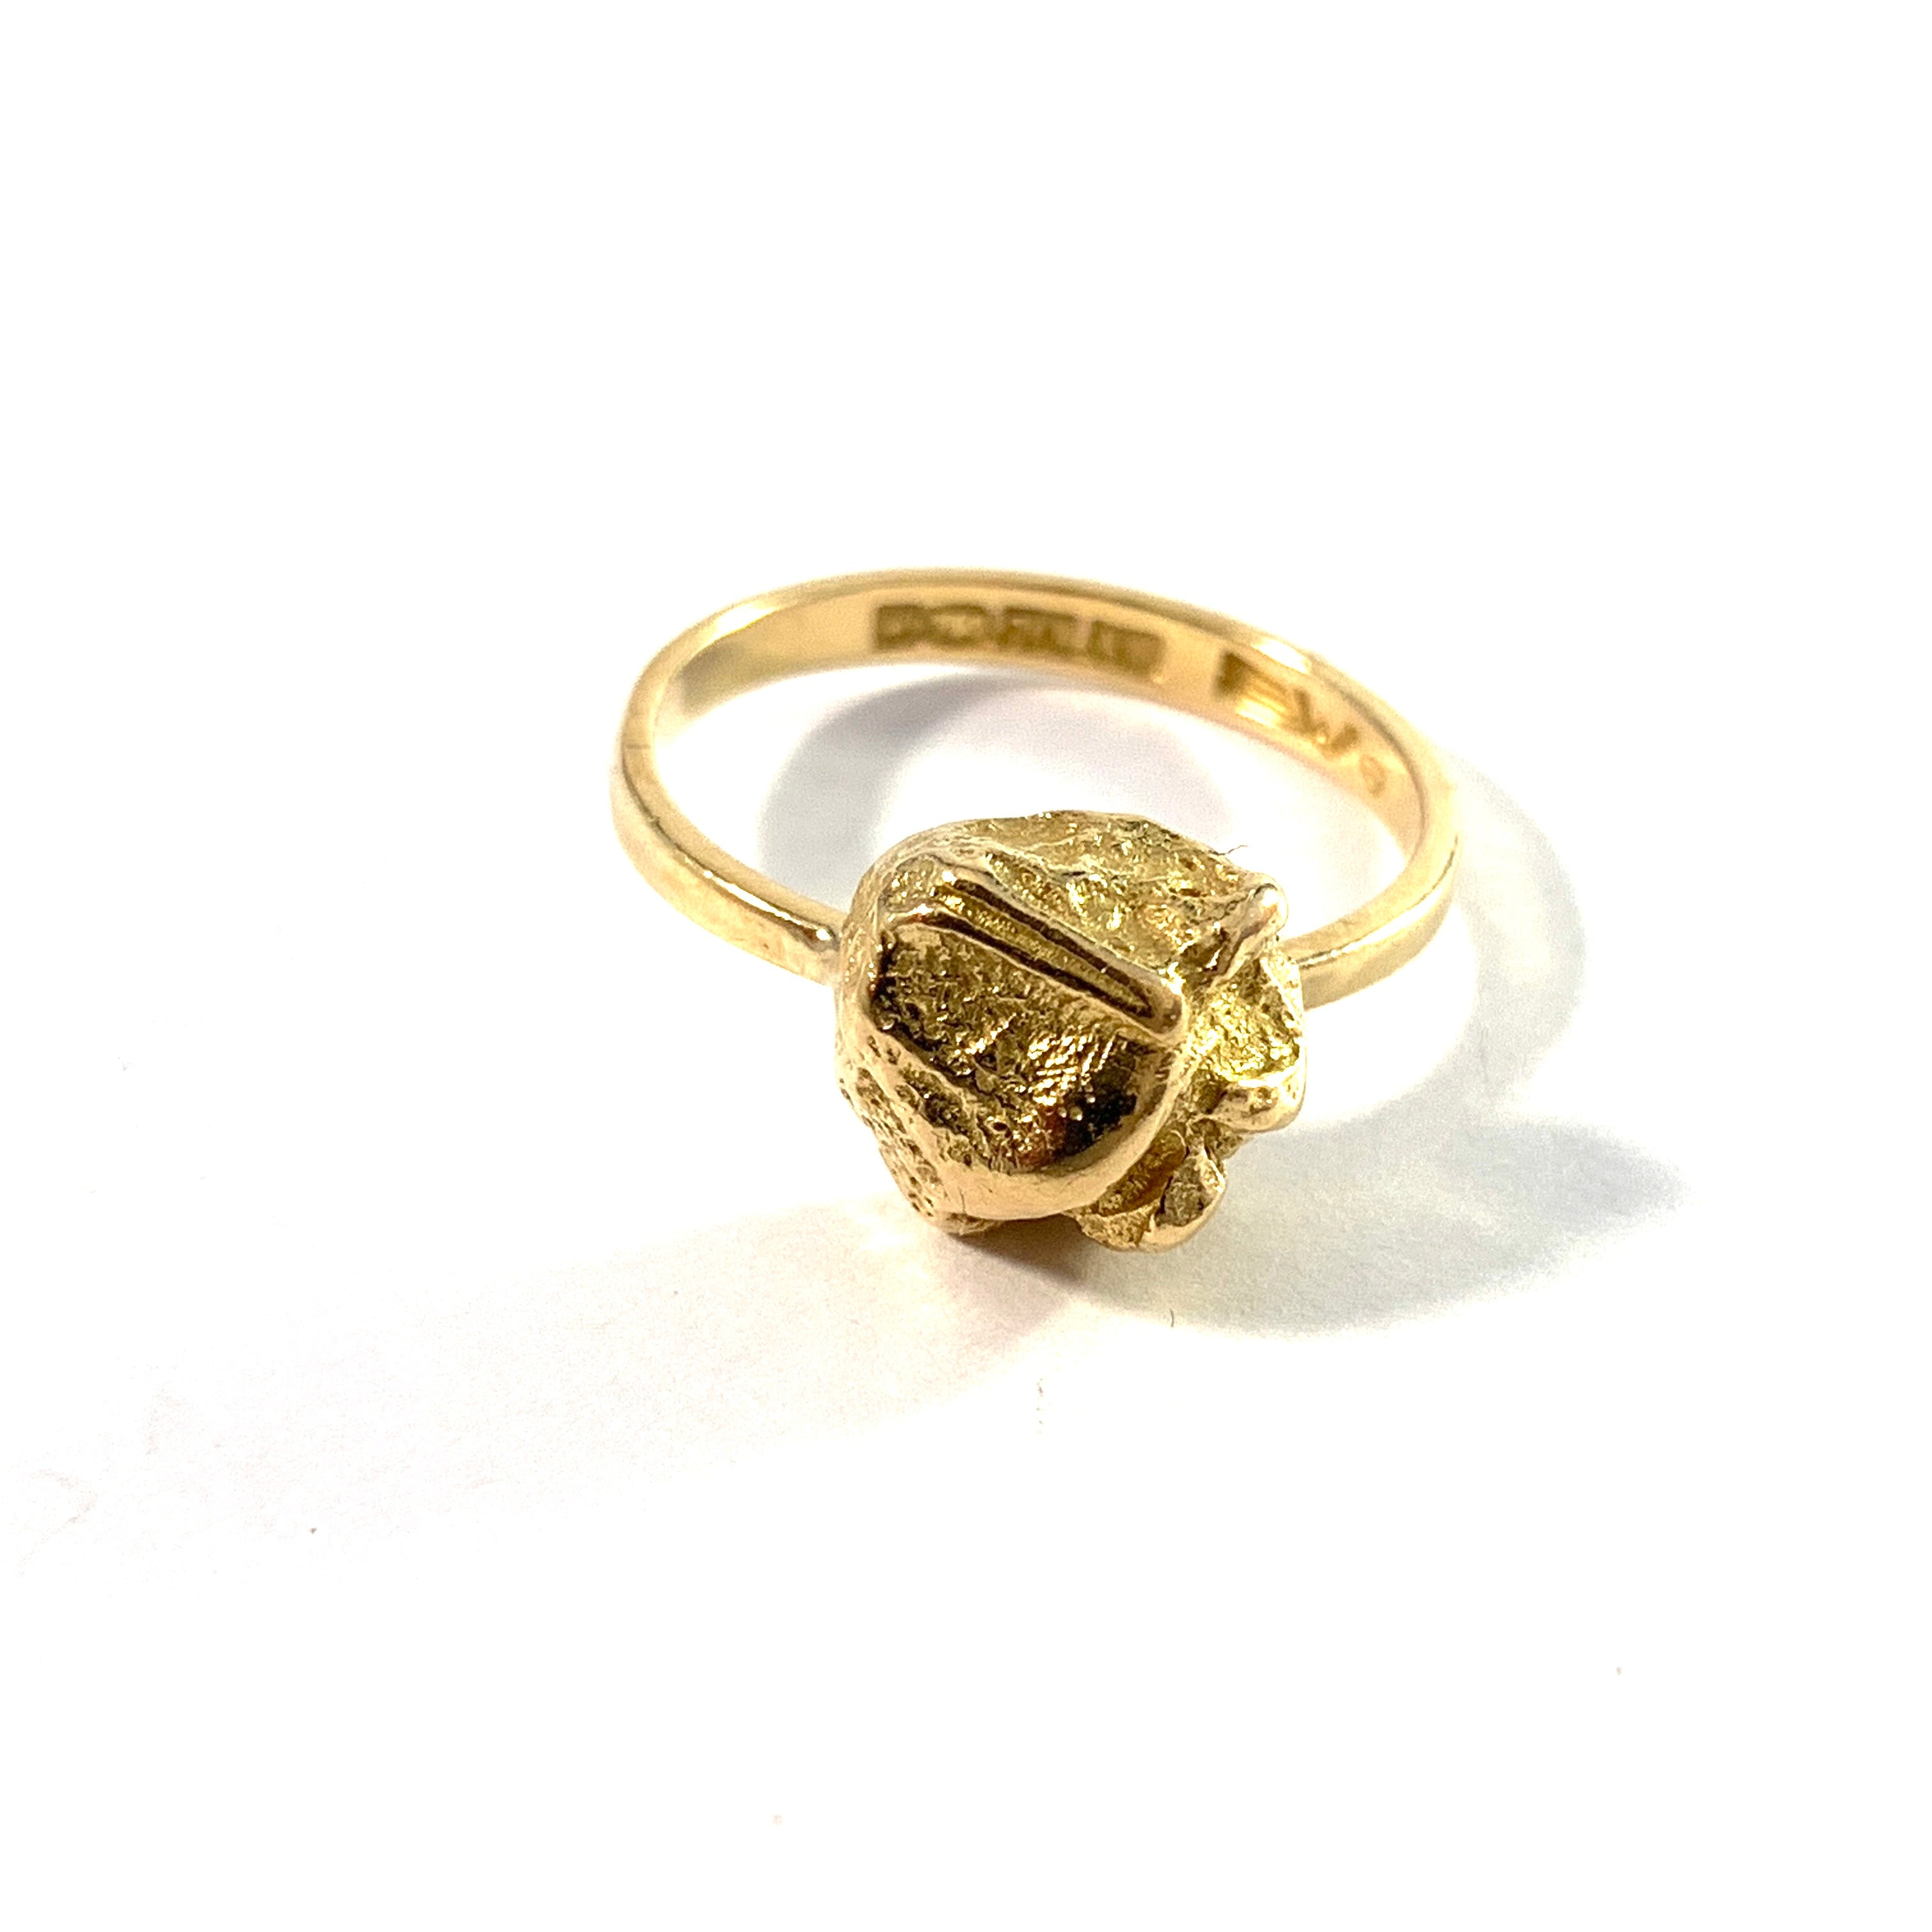 Björn Weckström for Lapponia Finland. Vintage 18k Gold Ring. Design: Yellow Rose.